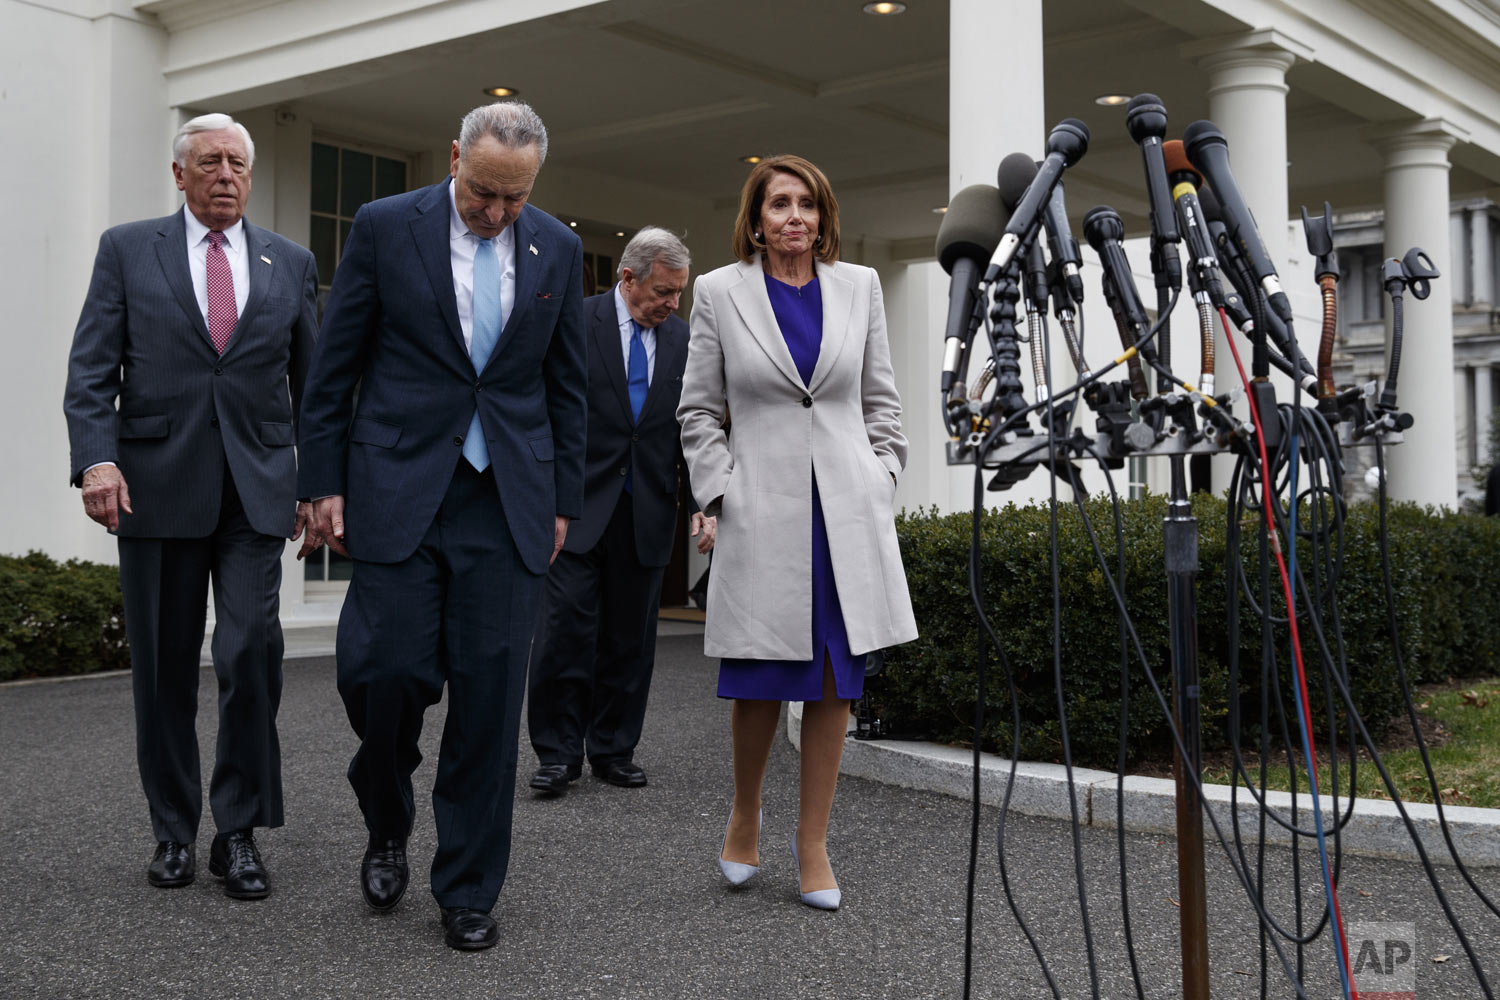 "From left, House Majority Leader Steny Hoyer of Md., Senate Minority Leader Chuck Schumer of N.Y., Sen. Dick Durbin, D-Ill., and Speaker of the House Nancy Pelosi of Calif., walk to speak to reporters after meeting with President Donald Trump about border security in the Situation Room of the White House, Friday, Jan. 4, 2018, in Washington. Trump declared Friday he could keep parts of the government shut down for ""months or even years"" as he and Democratic leaders failed in a second closed-door meeting to resolve his demand for billions of dollars for a border wall with Mexico. (AP Photo/Evan Vucci)"